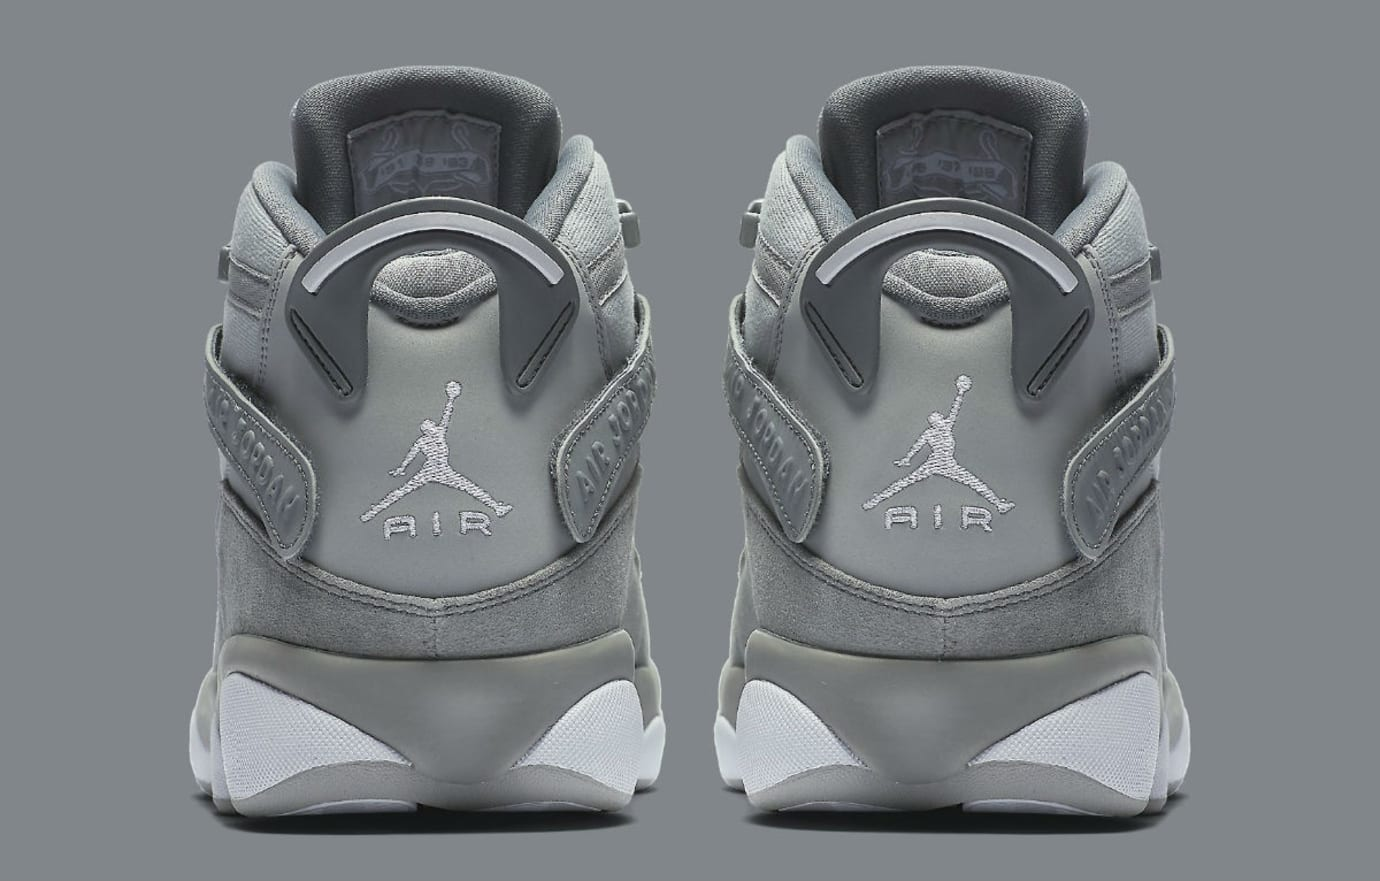 new style 742f3 ea6f4 Jordan 6 Rings 2017 Release Date | Sole Collector